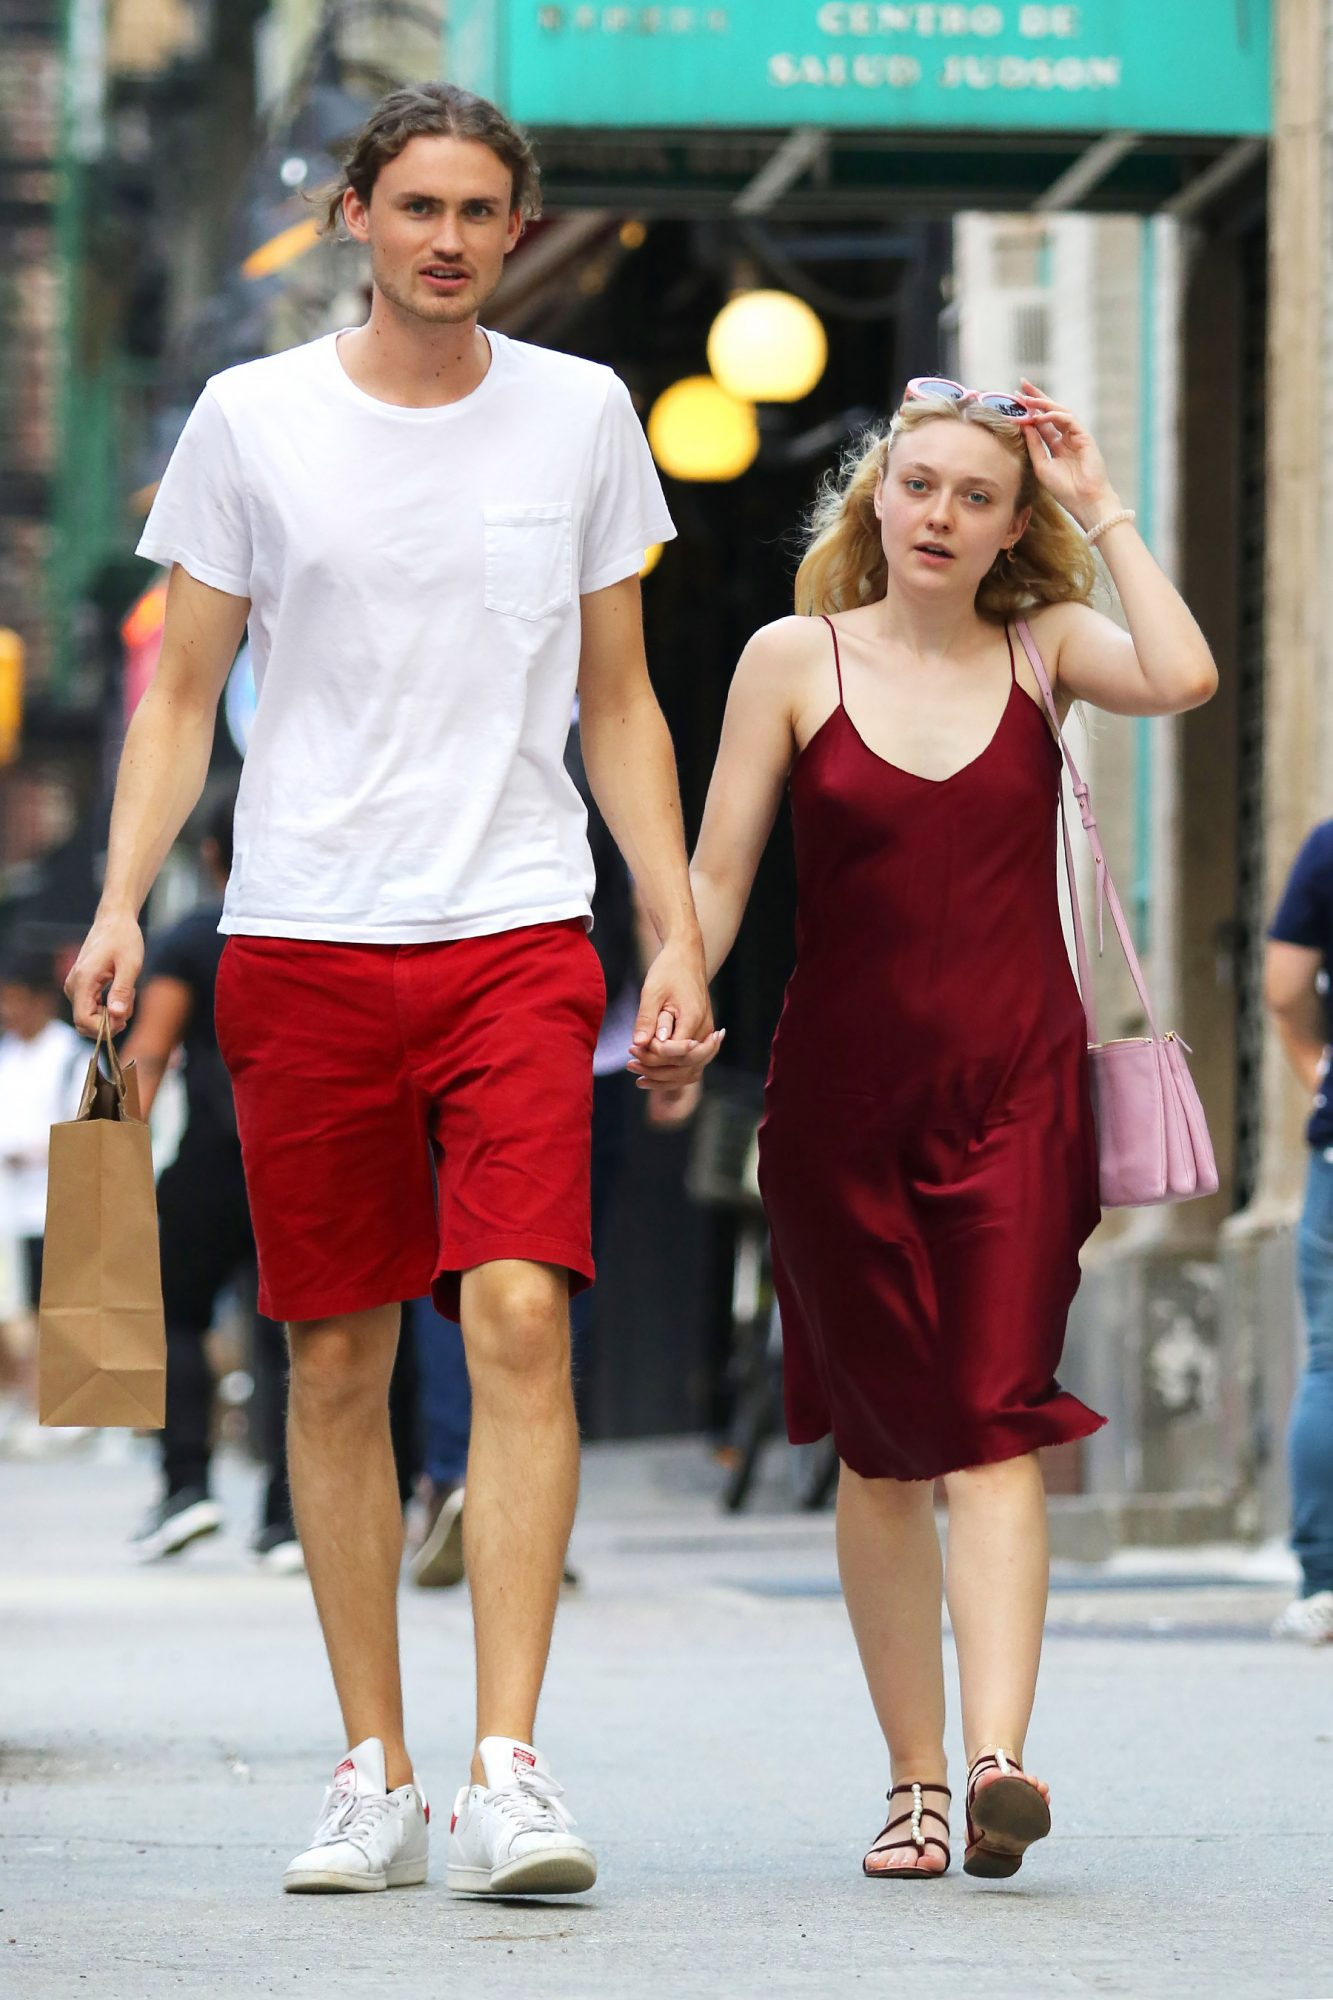 Dakota Fanning and boyfriend Henry Frye hold hands while on a romantic stroll in NYC